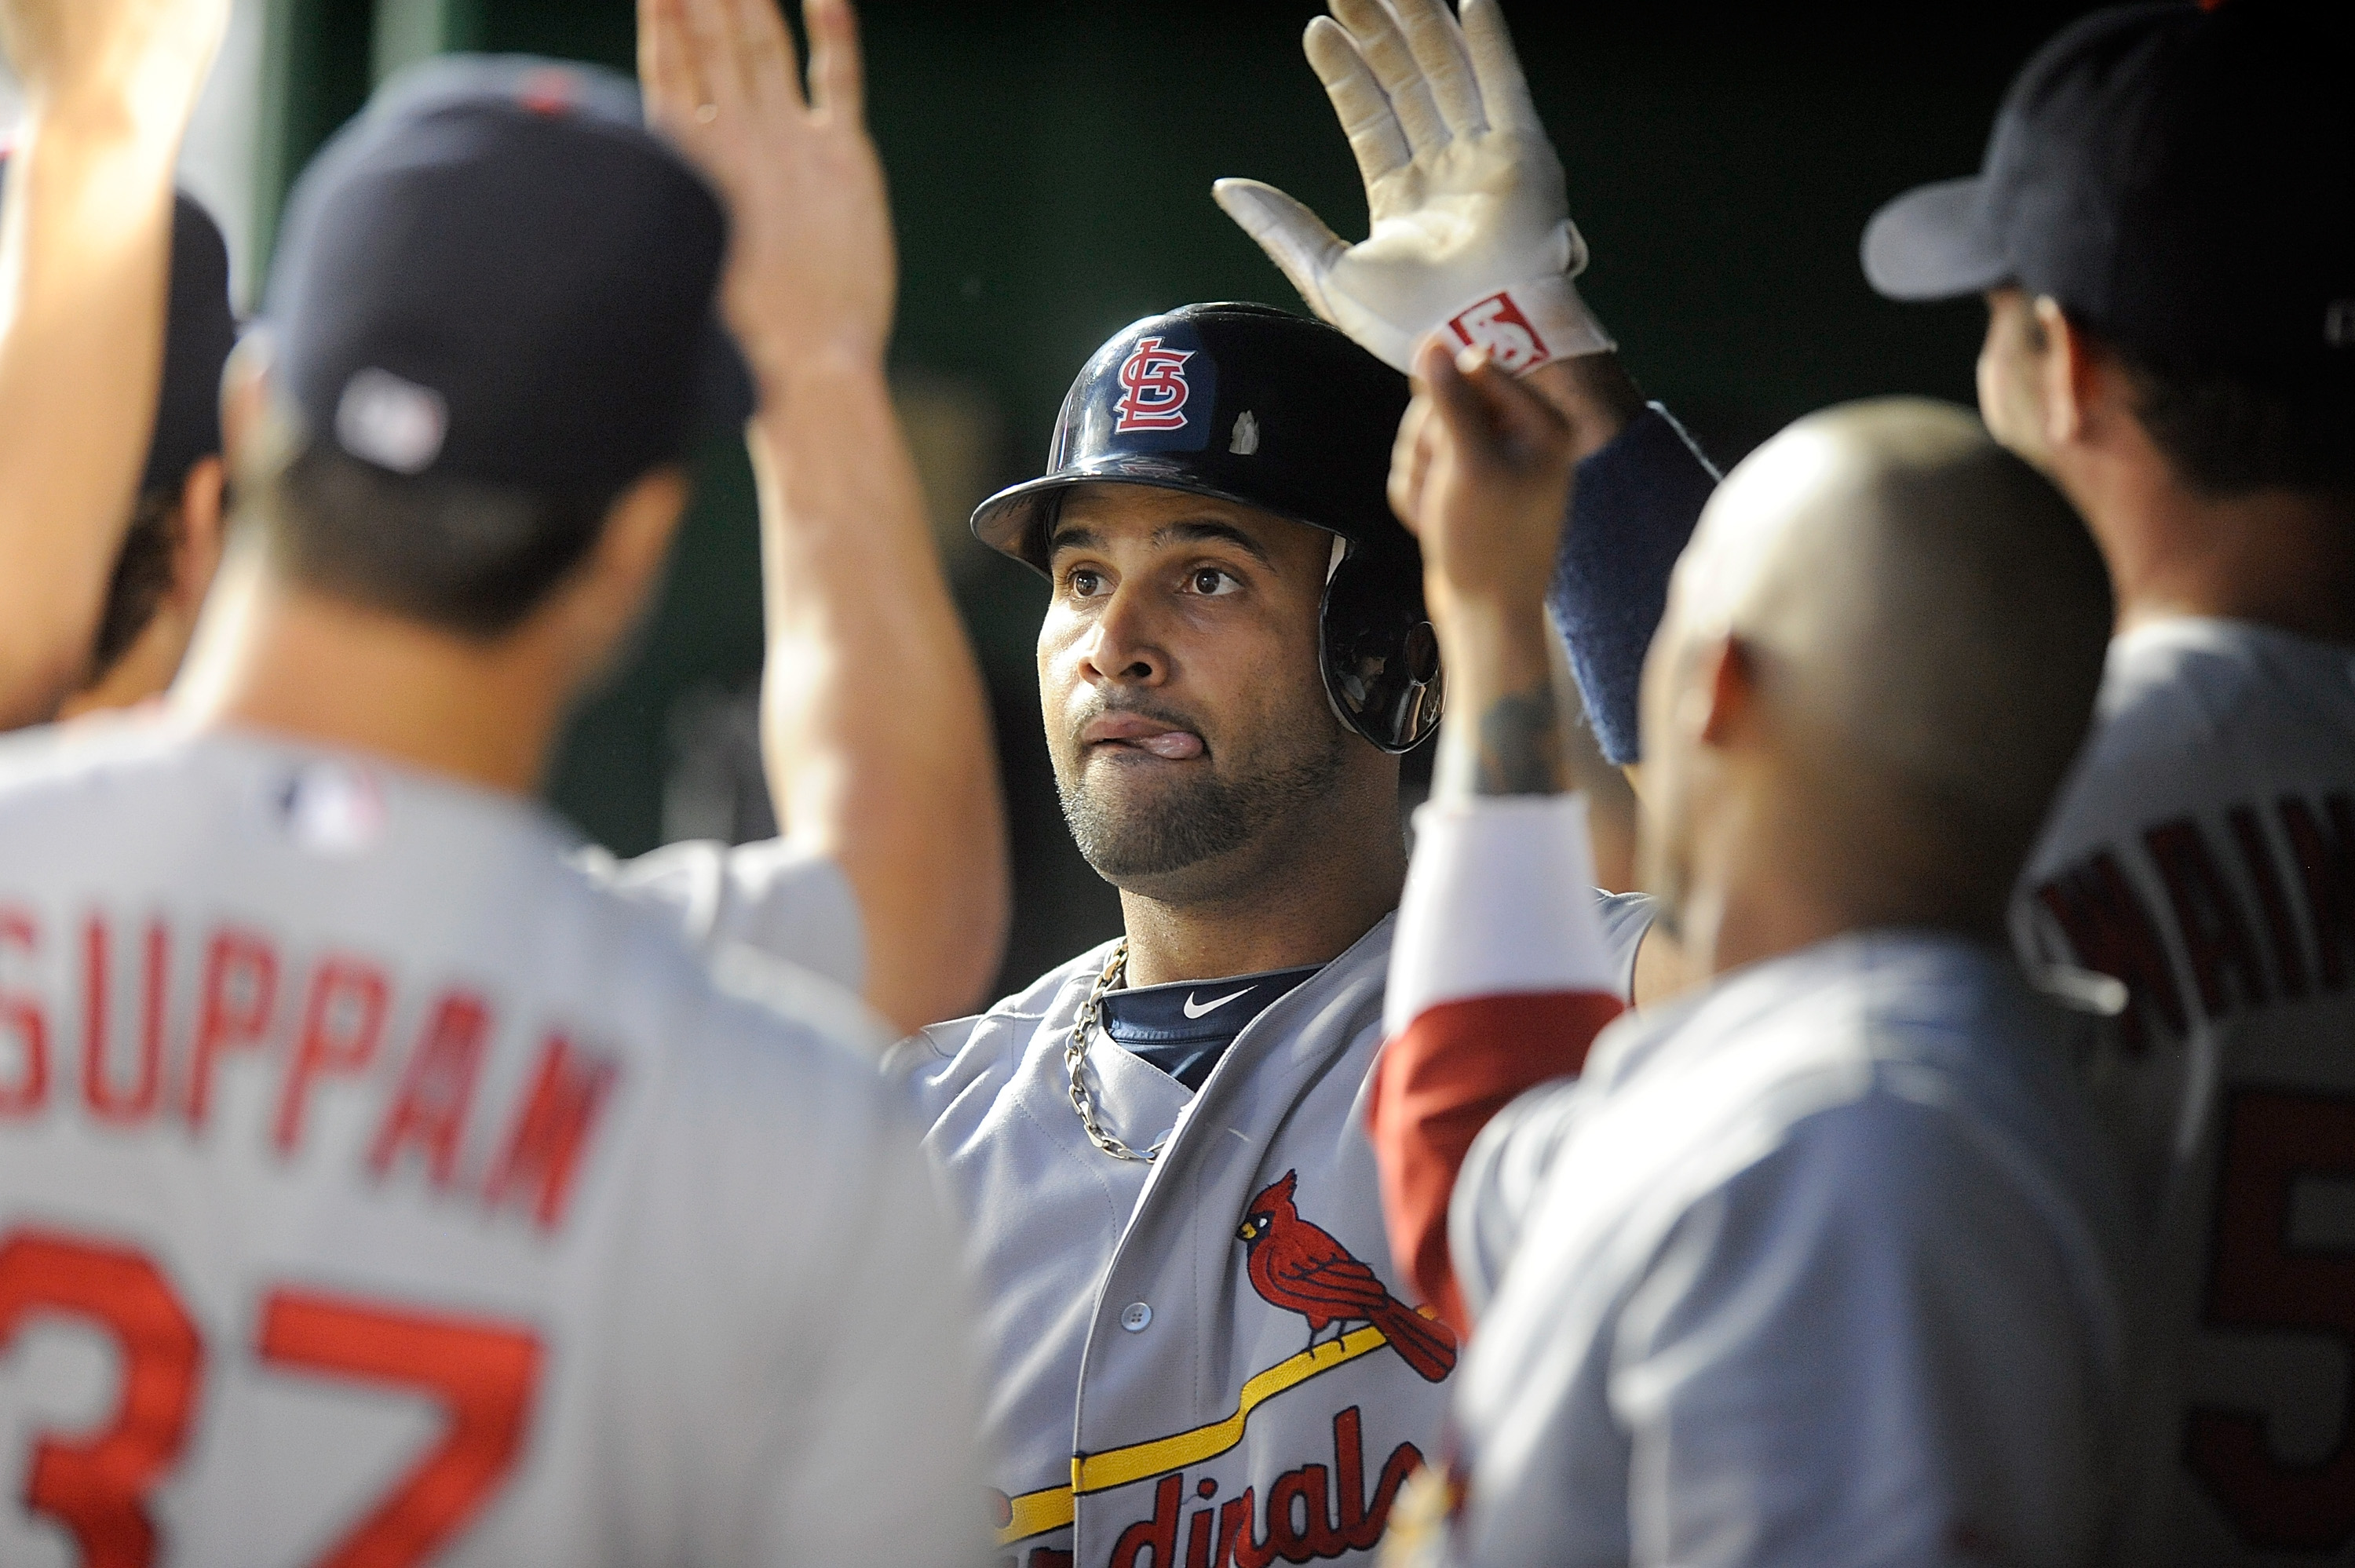 WASHINGTON - AUGUST 26:  Albert Pujols #5 of the St. Louis Cardinals is congratulated by teammates after hitting a home run in the fourth inning against the Washington Nationals at Nationals Park on August 26, 2010 in Washington, DC. It was the 400th home